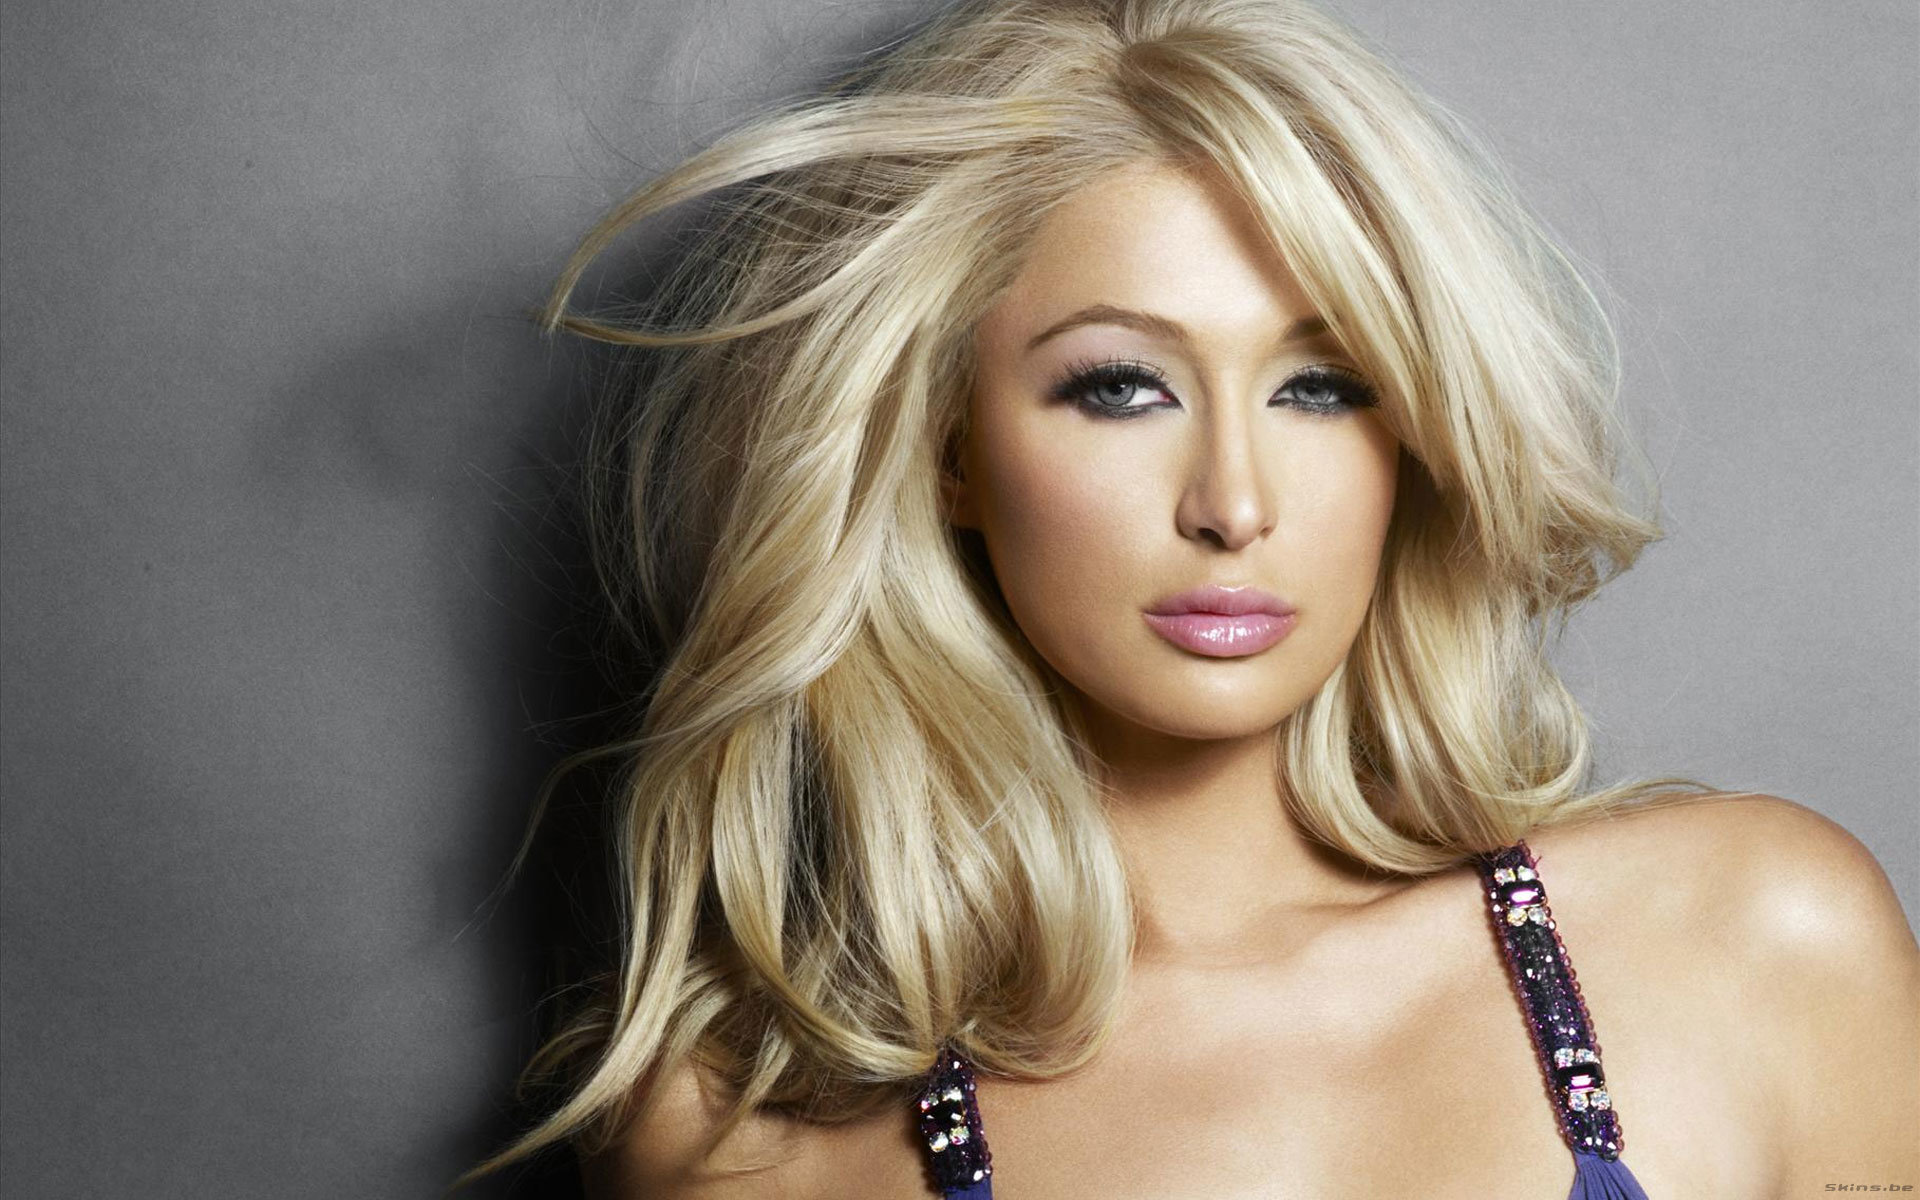 High resolution Paris Hilton hd 1920x1200 background ID:34604 for computer